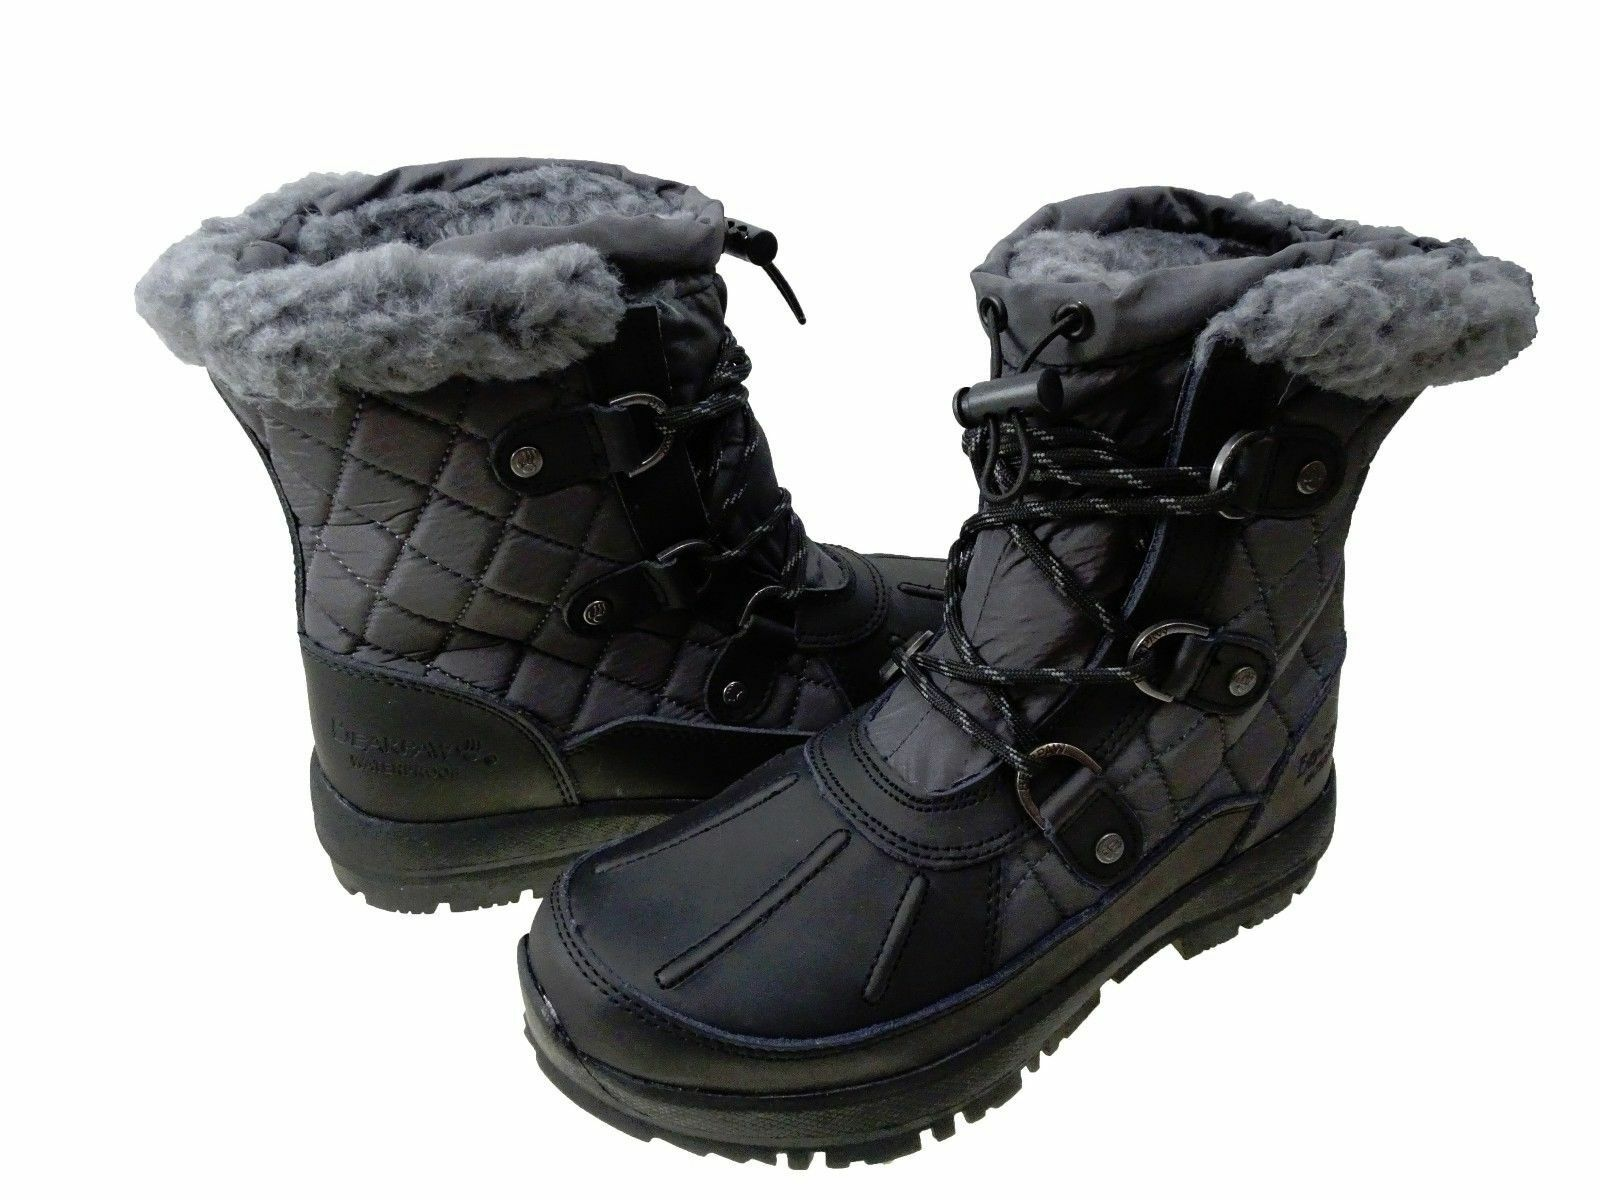 Bearpaw Womens Bethany Lace Up Waterproof Cold Weather Shearling Snow Boots